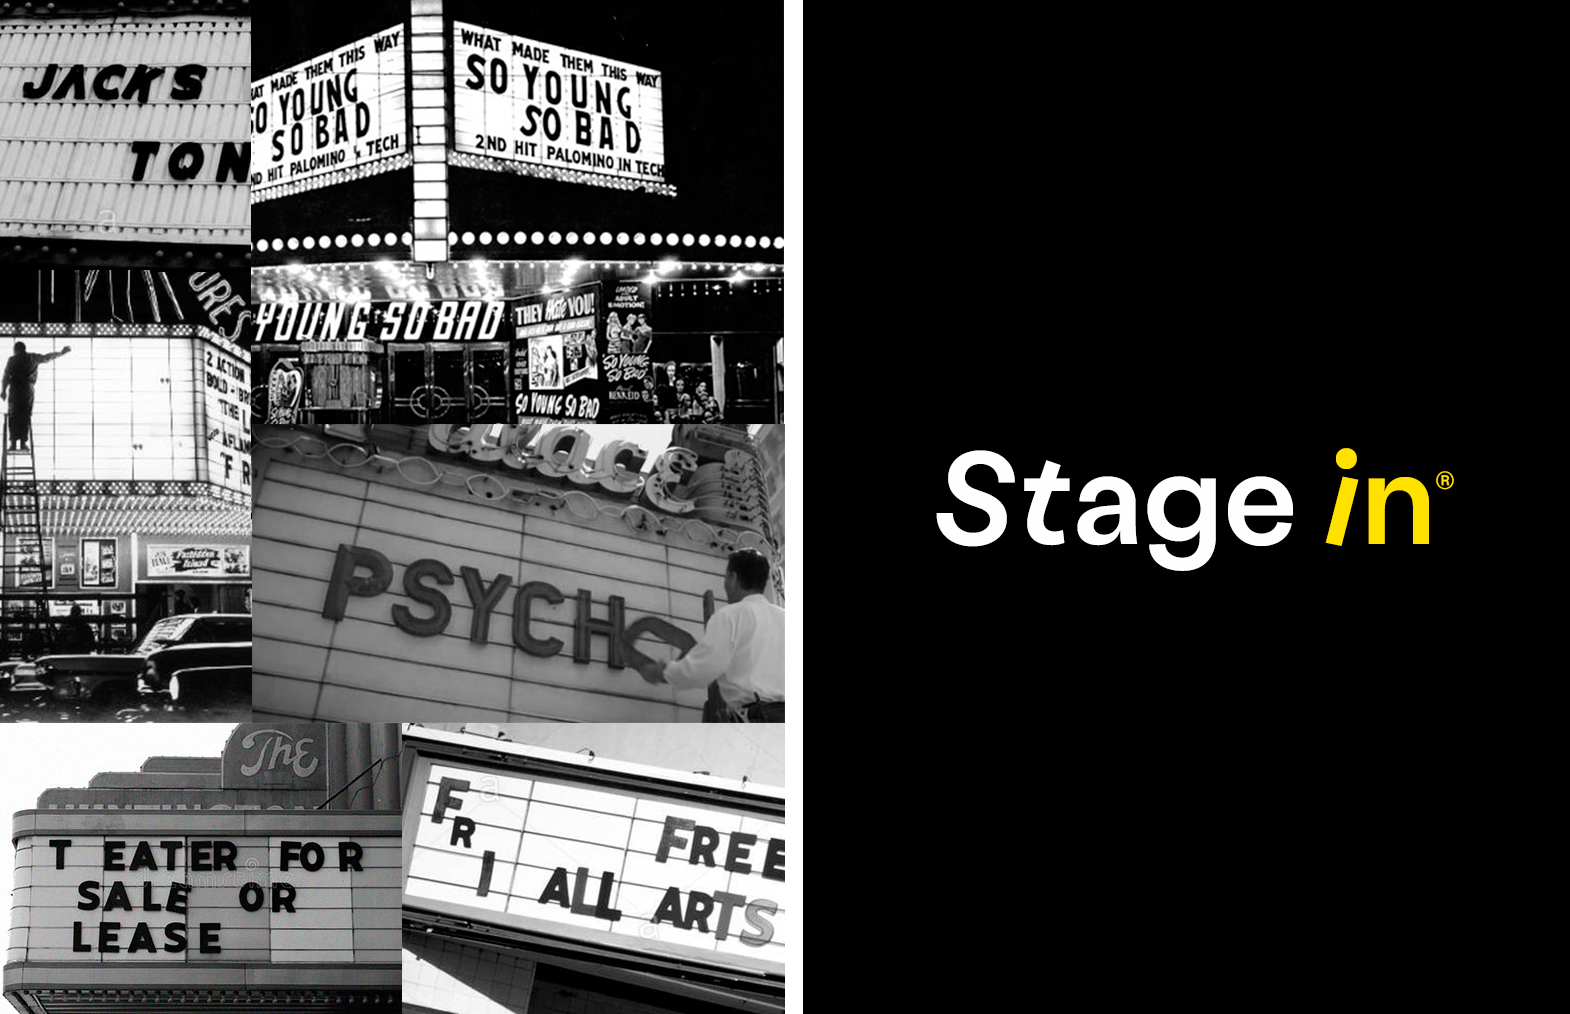 Stage in